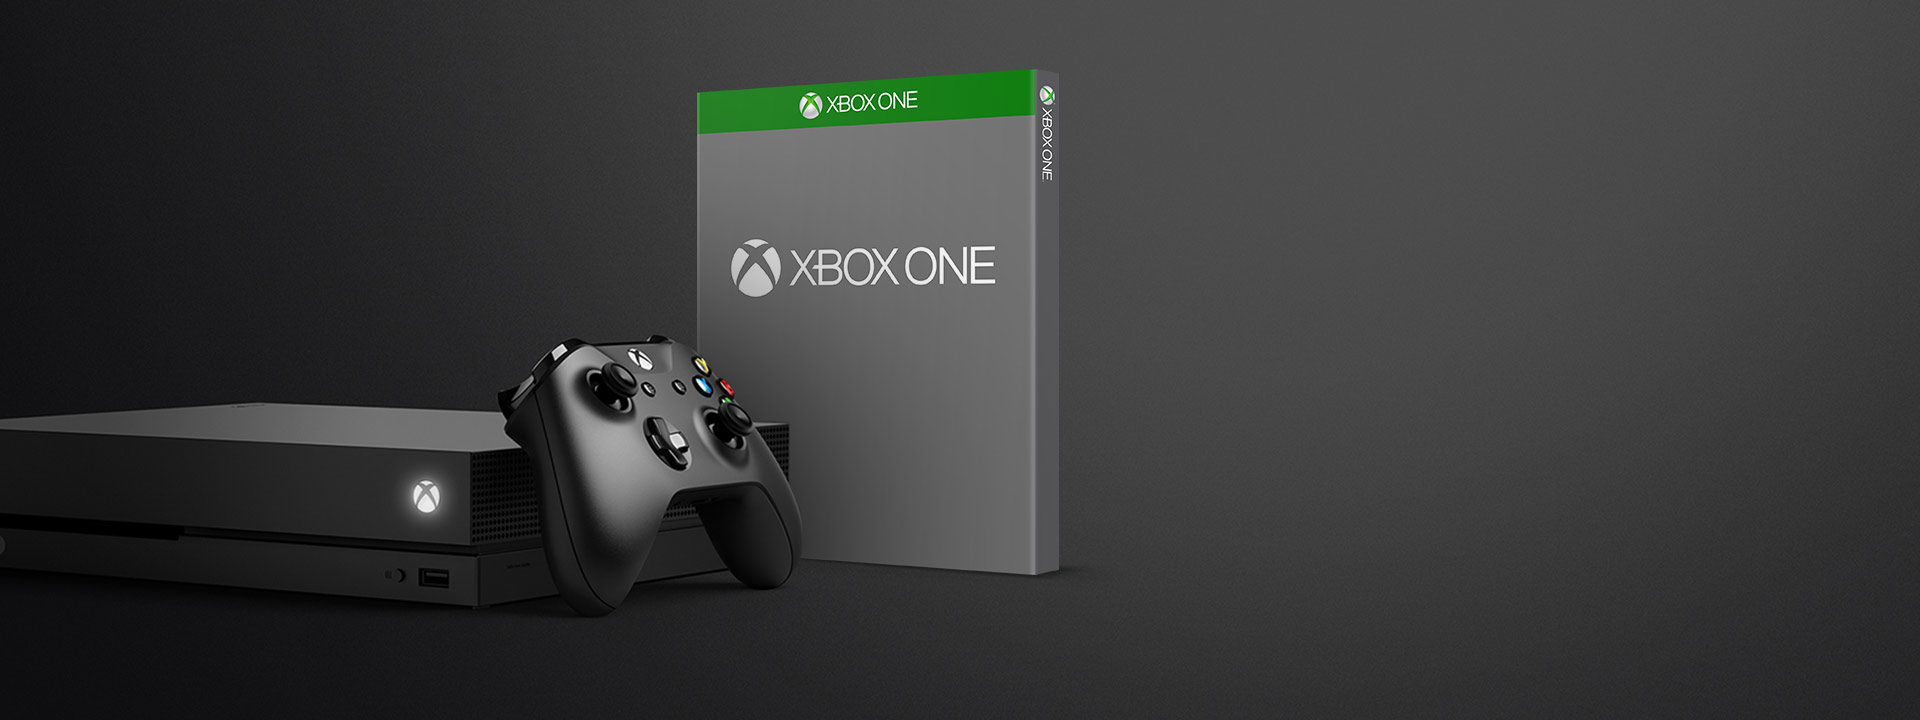 Xbox One X and controller with blank boxshot with the Xbox One logo